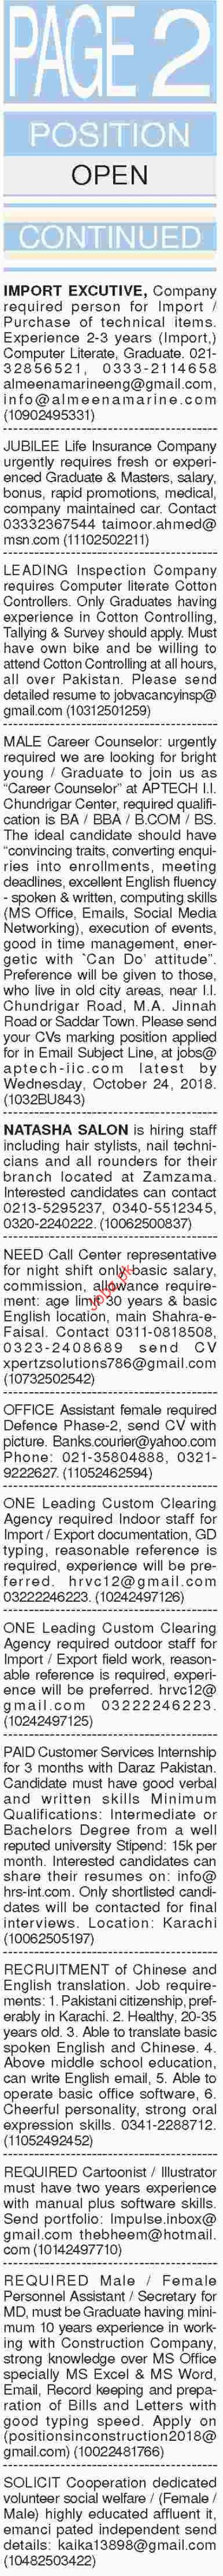 Dawn Sunday Classified Ads for Insurance Staff Jobs 2018